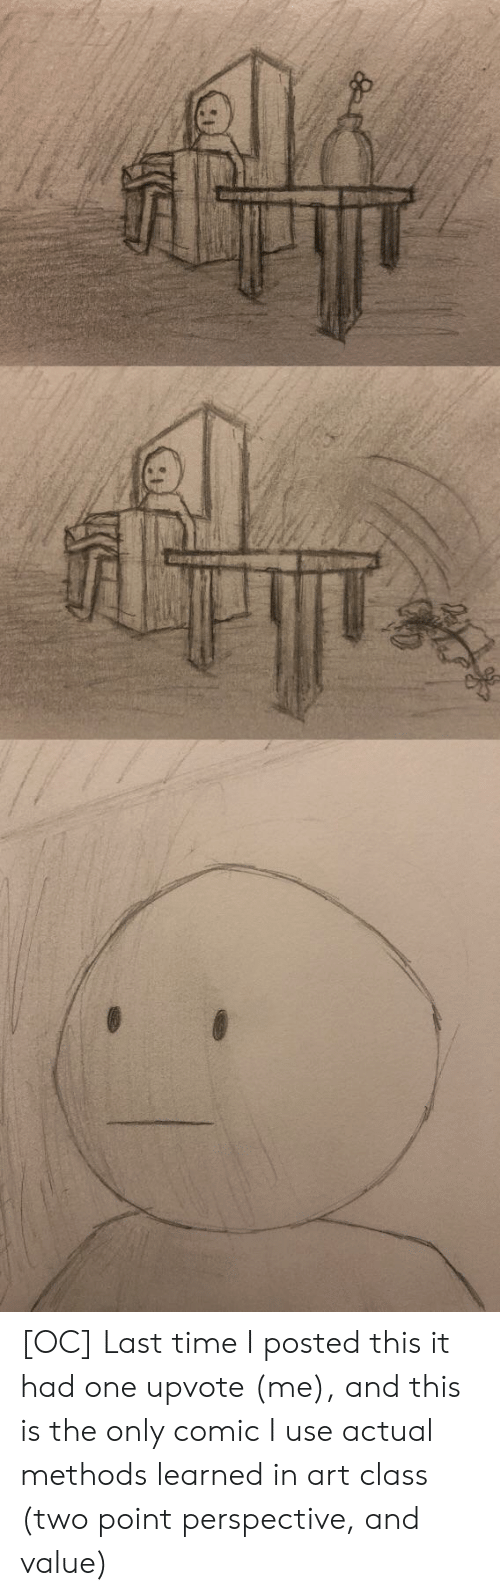 Time, Art, and Class: [OC] Last time I posted this it had one upvote (me), and this is the only comic I use actual methods learned in art class (two point perspective, and value)